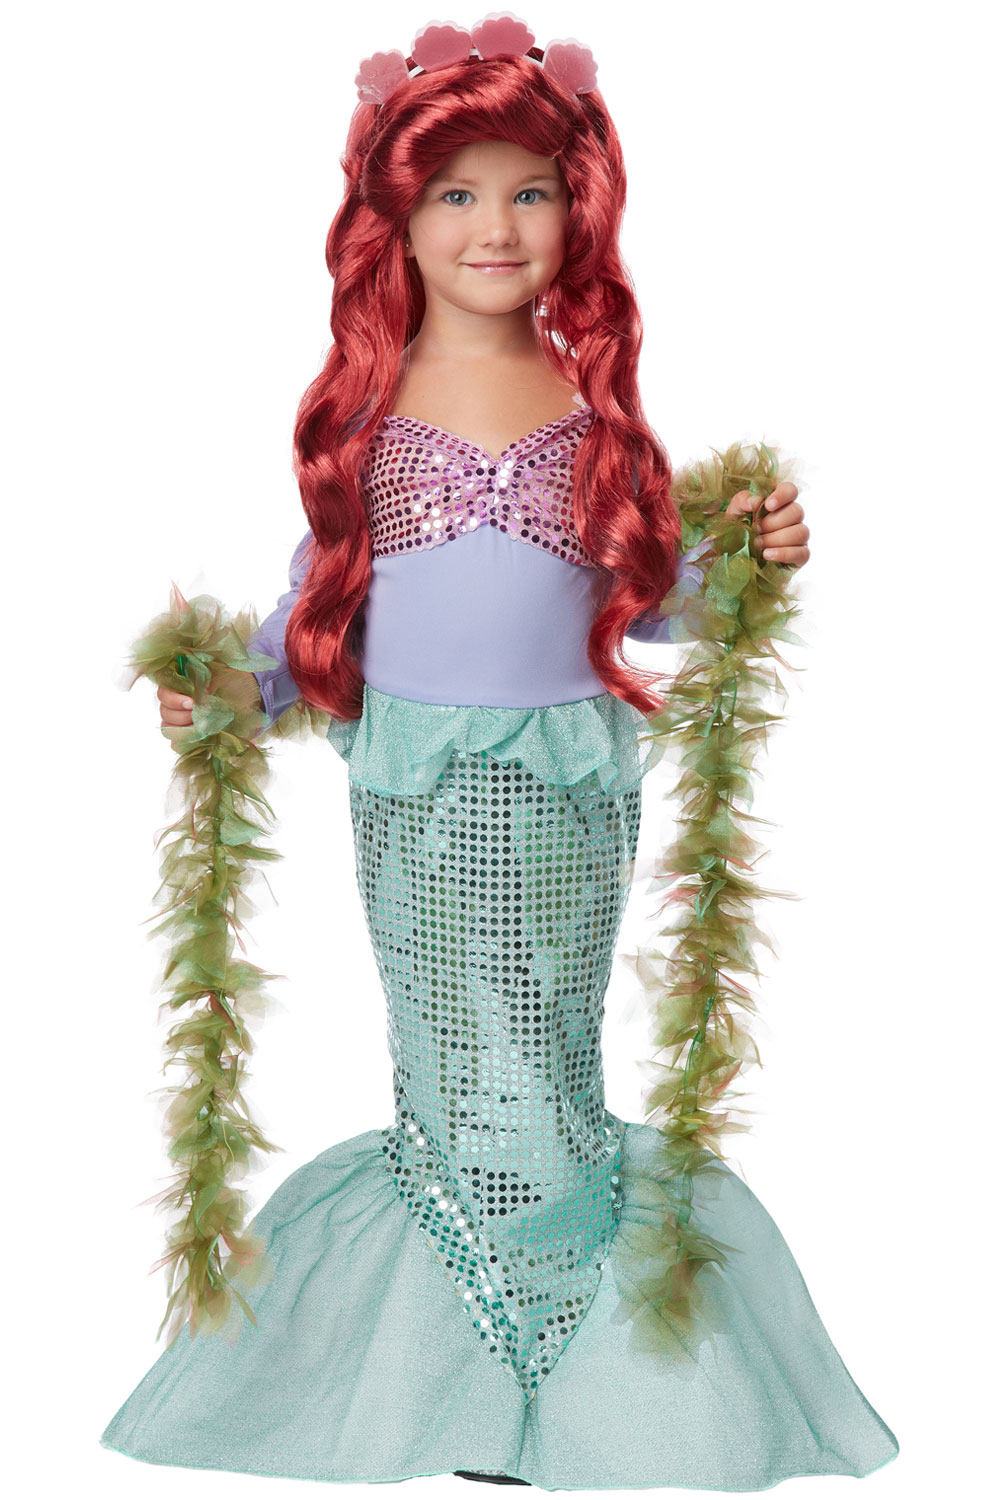 Little-Mermaid-Princess-Ariel-Toddler-Costume